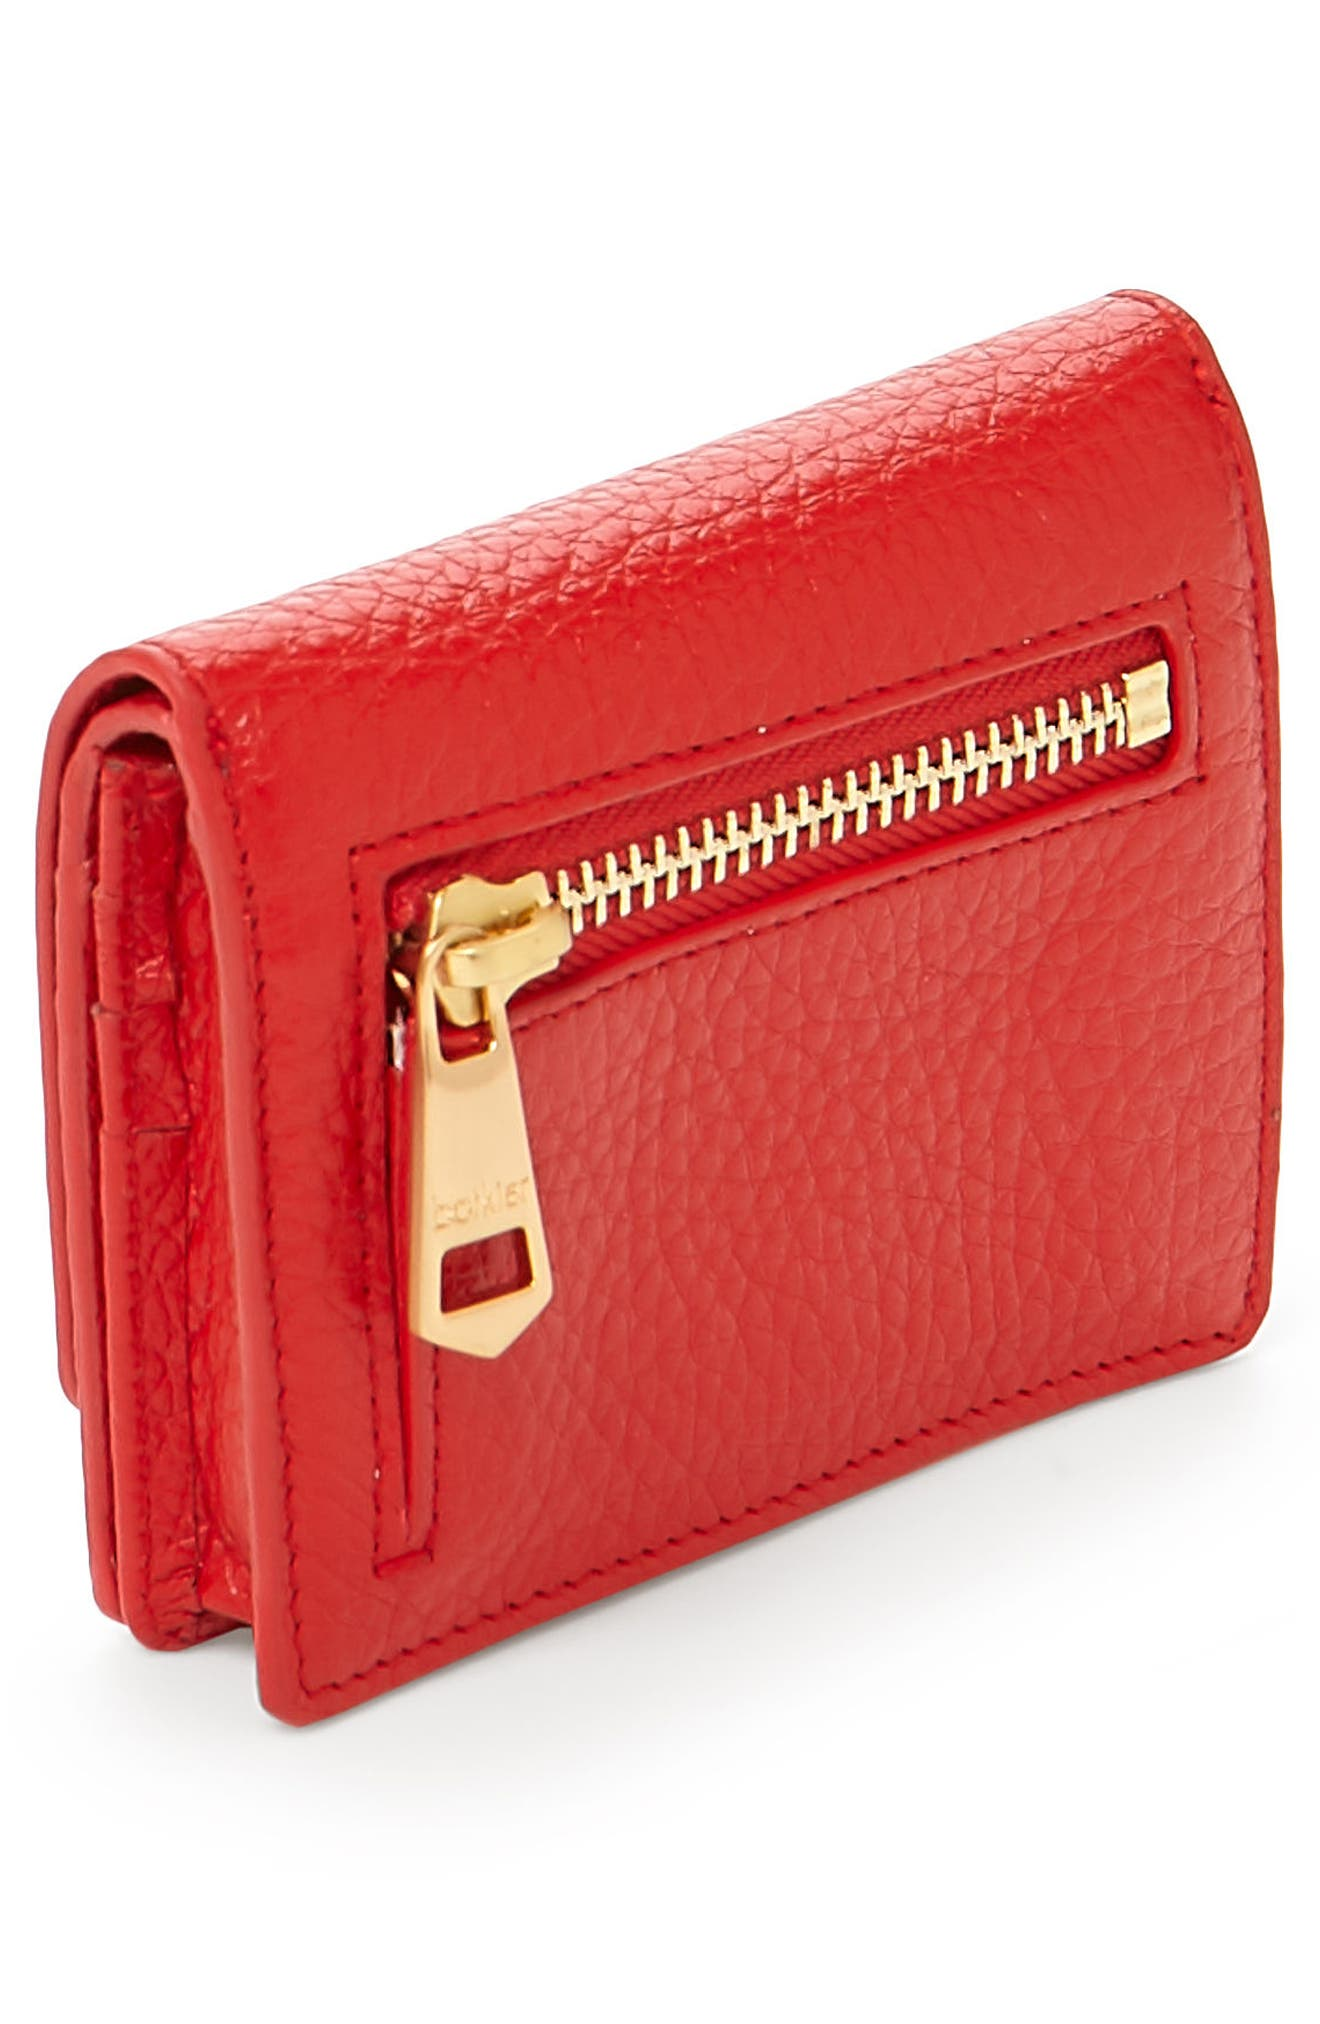 Soho Mini Leather Wallet,                             Alternate thumbnail 3, color,                             Poppy